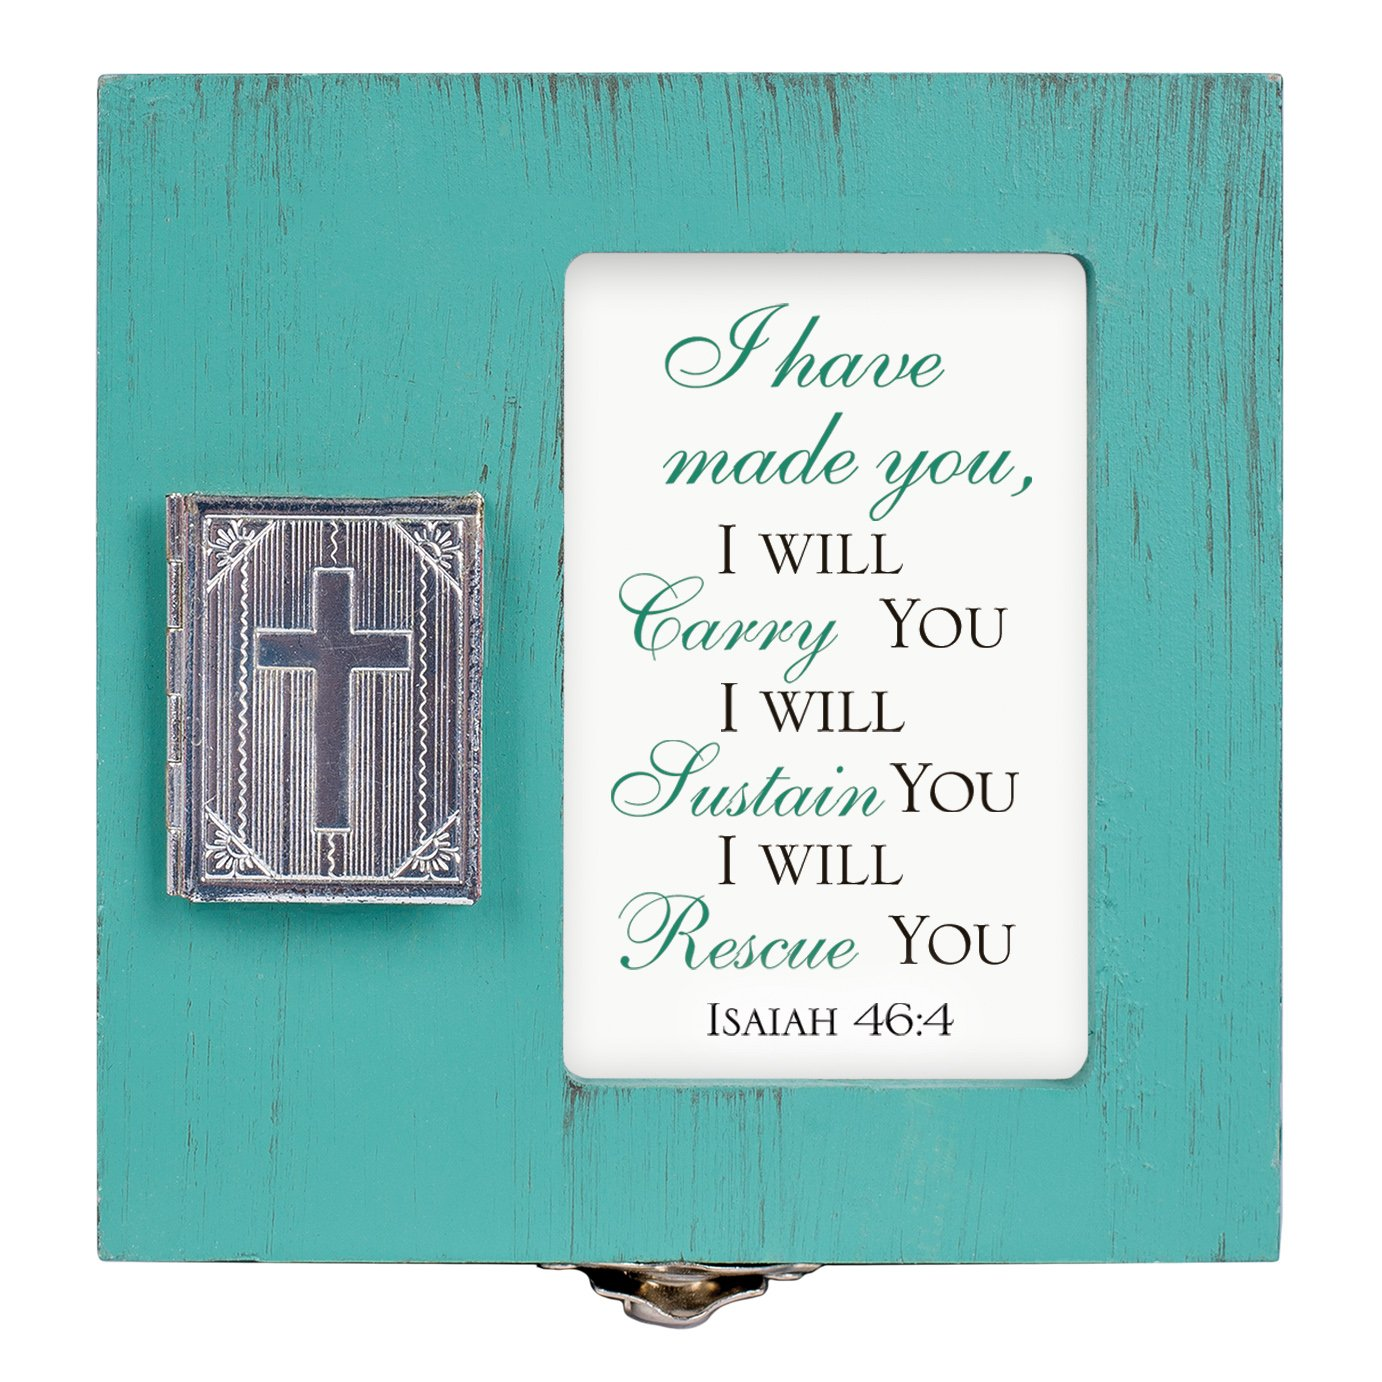 Cottage Garden I Will Carry Sustain Rescue You 4.5 x 4.5 inch Distressed Coral Wood Locket Jewelry Keepsake Box